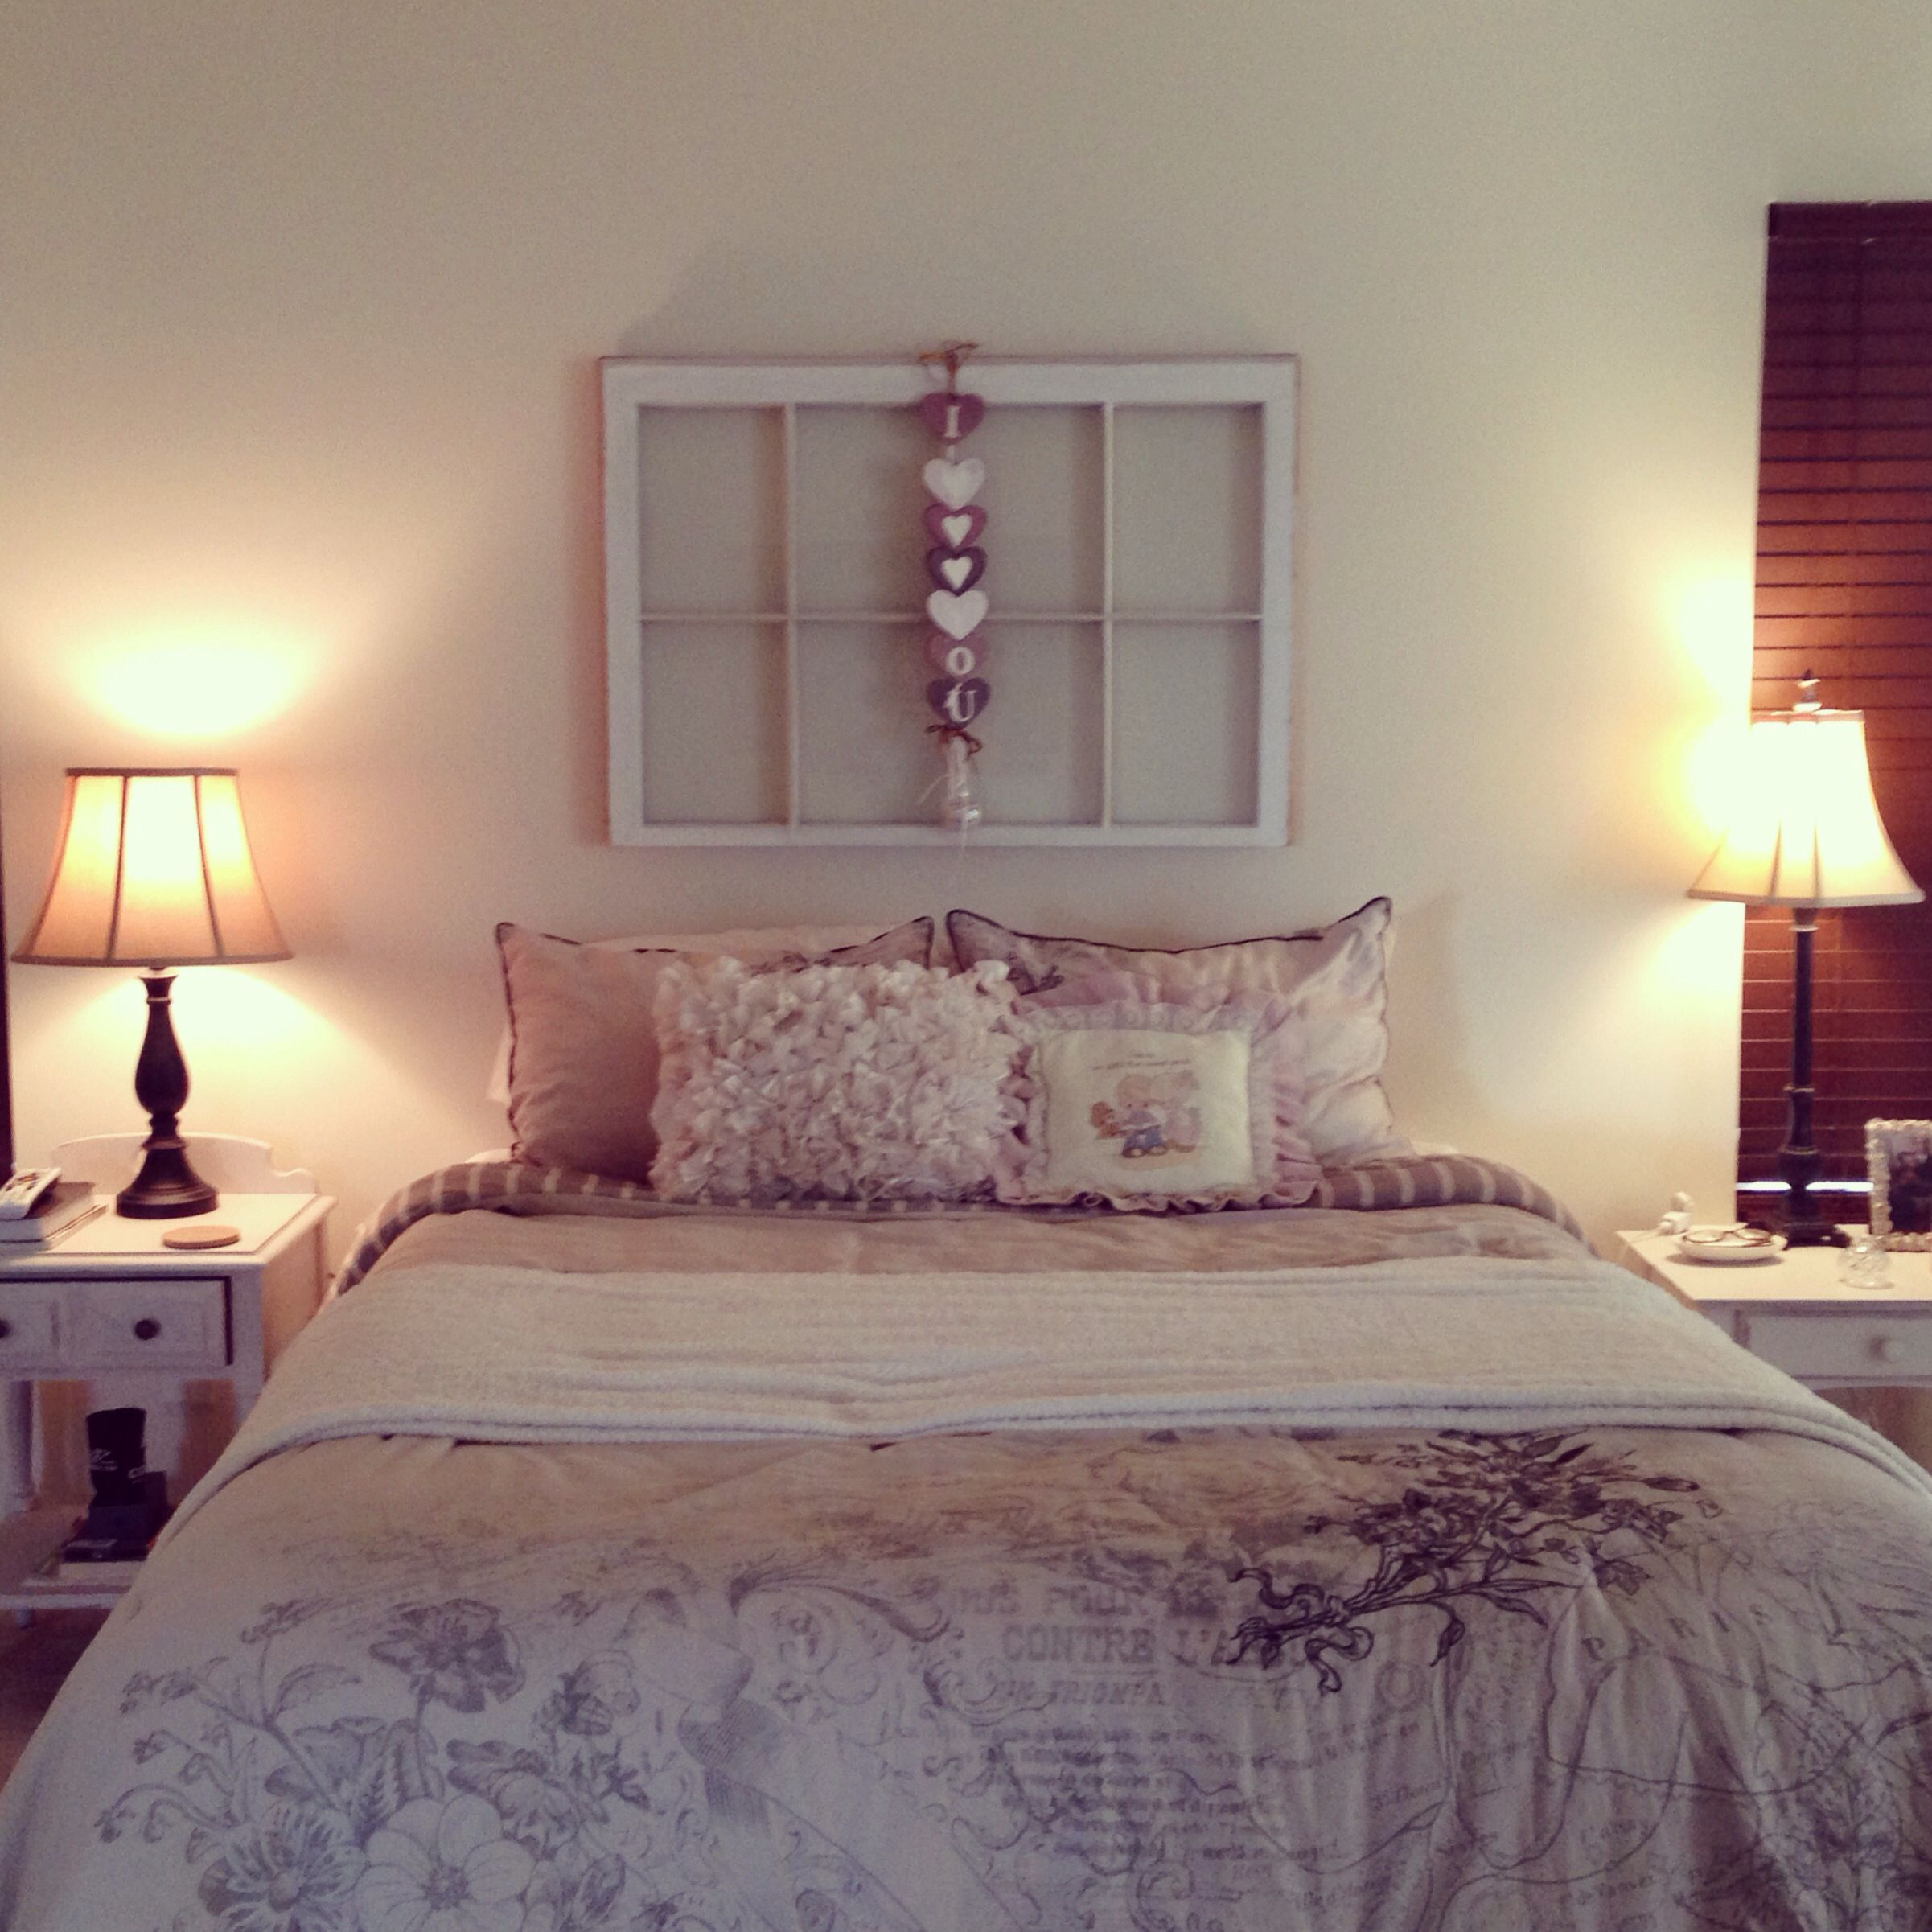 Bedroom Decorations Pinterest Shabby Chic Bedroom Home Ideas Pinterest